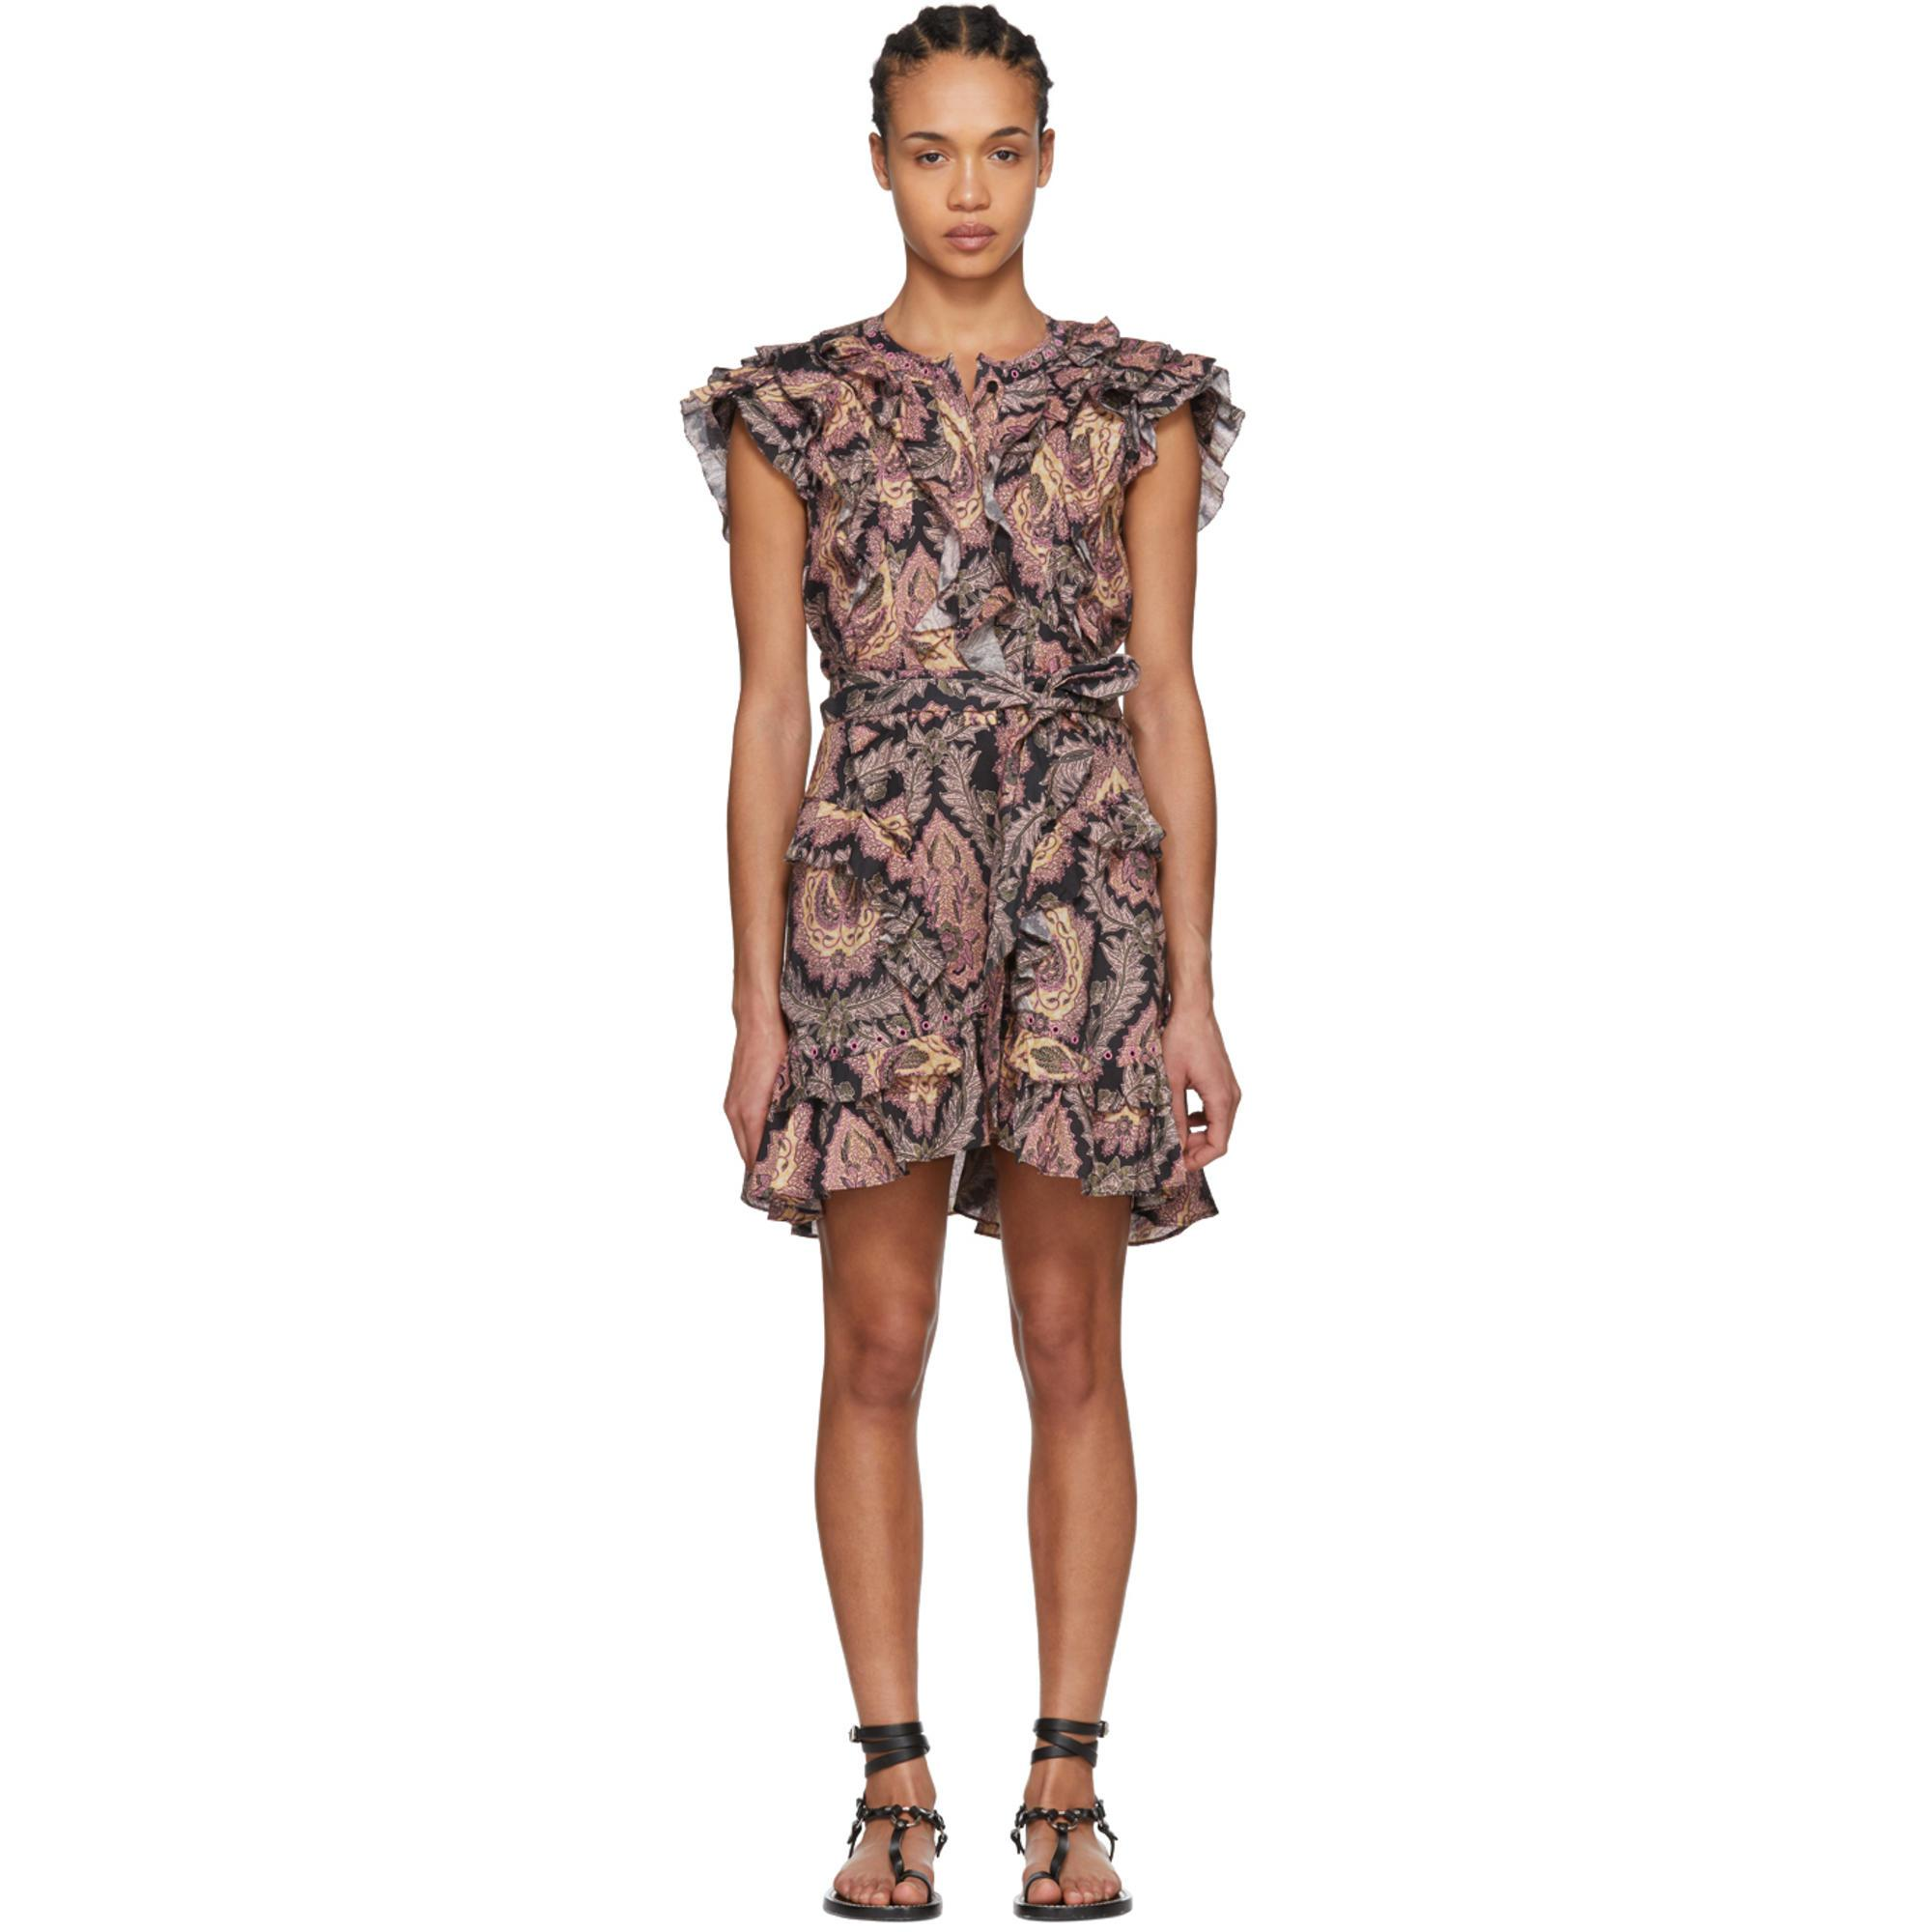 Xanity dress - Multicolour Isabel Marant Shop Offer Sale Online How Much Online nK03OKb3